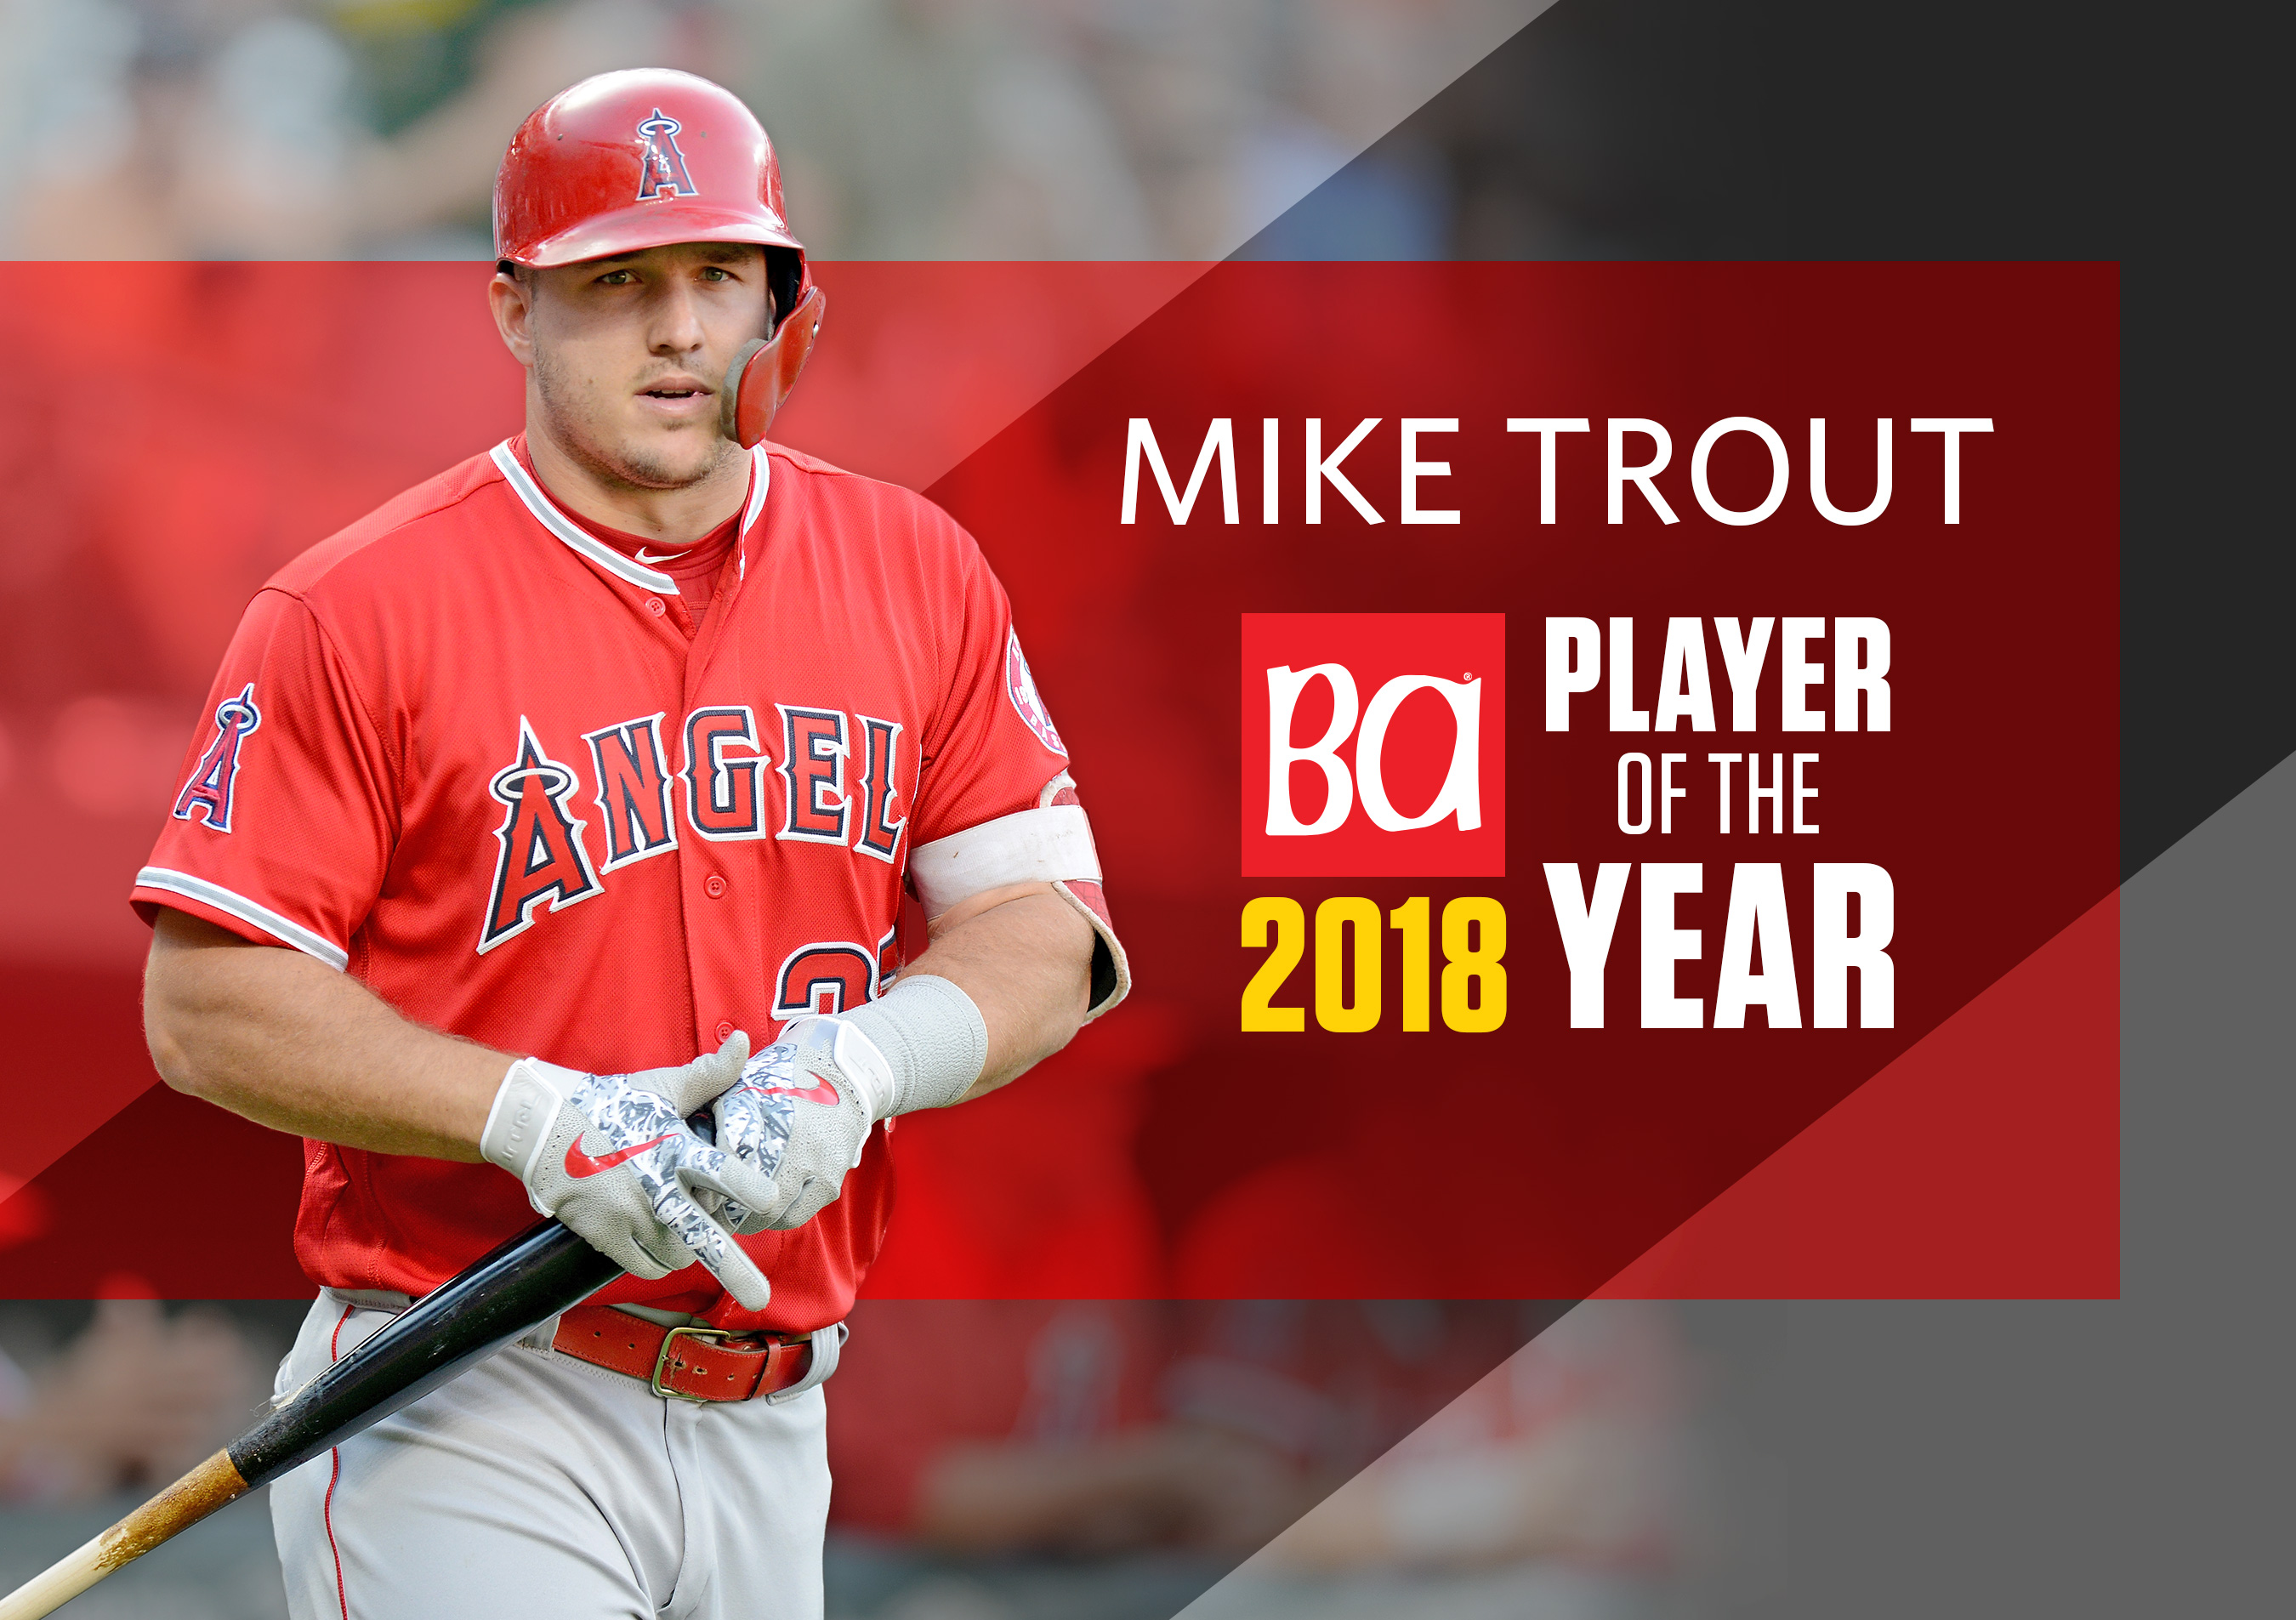 2018 Mlb Player Of The Year Mike Trout